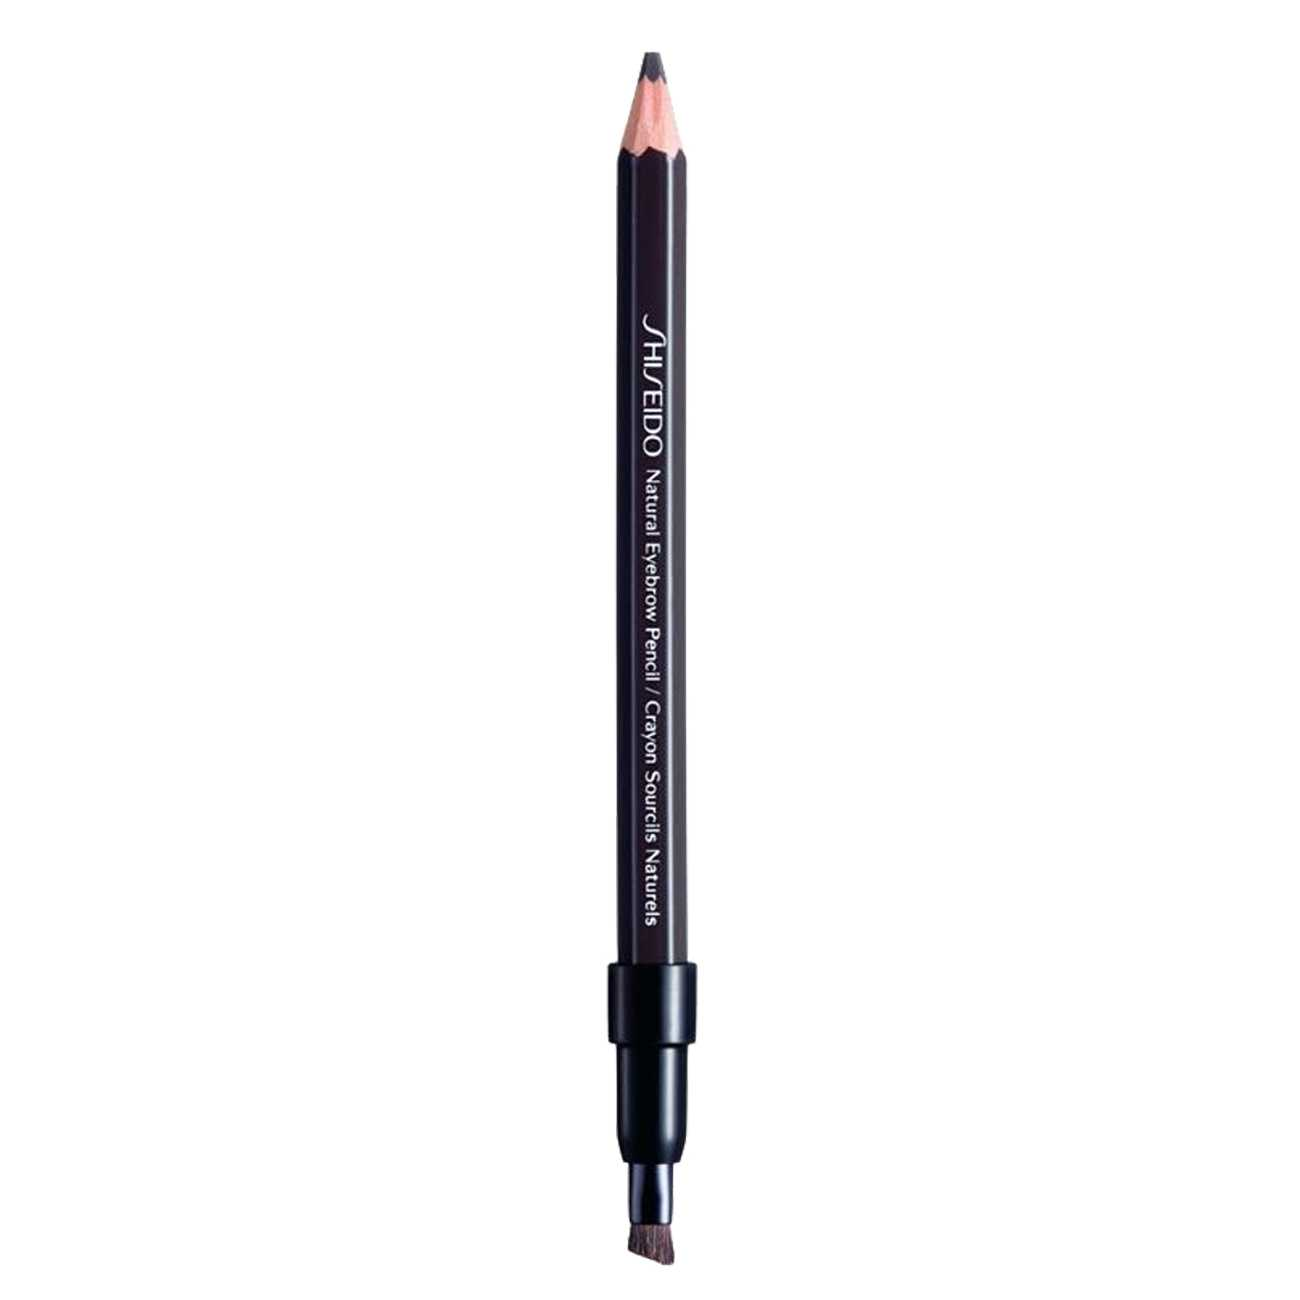 NATURAL EYEBROW PENCIL 4 G Deep Brown Br602 imagine produs